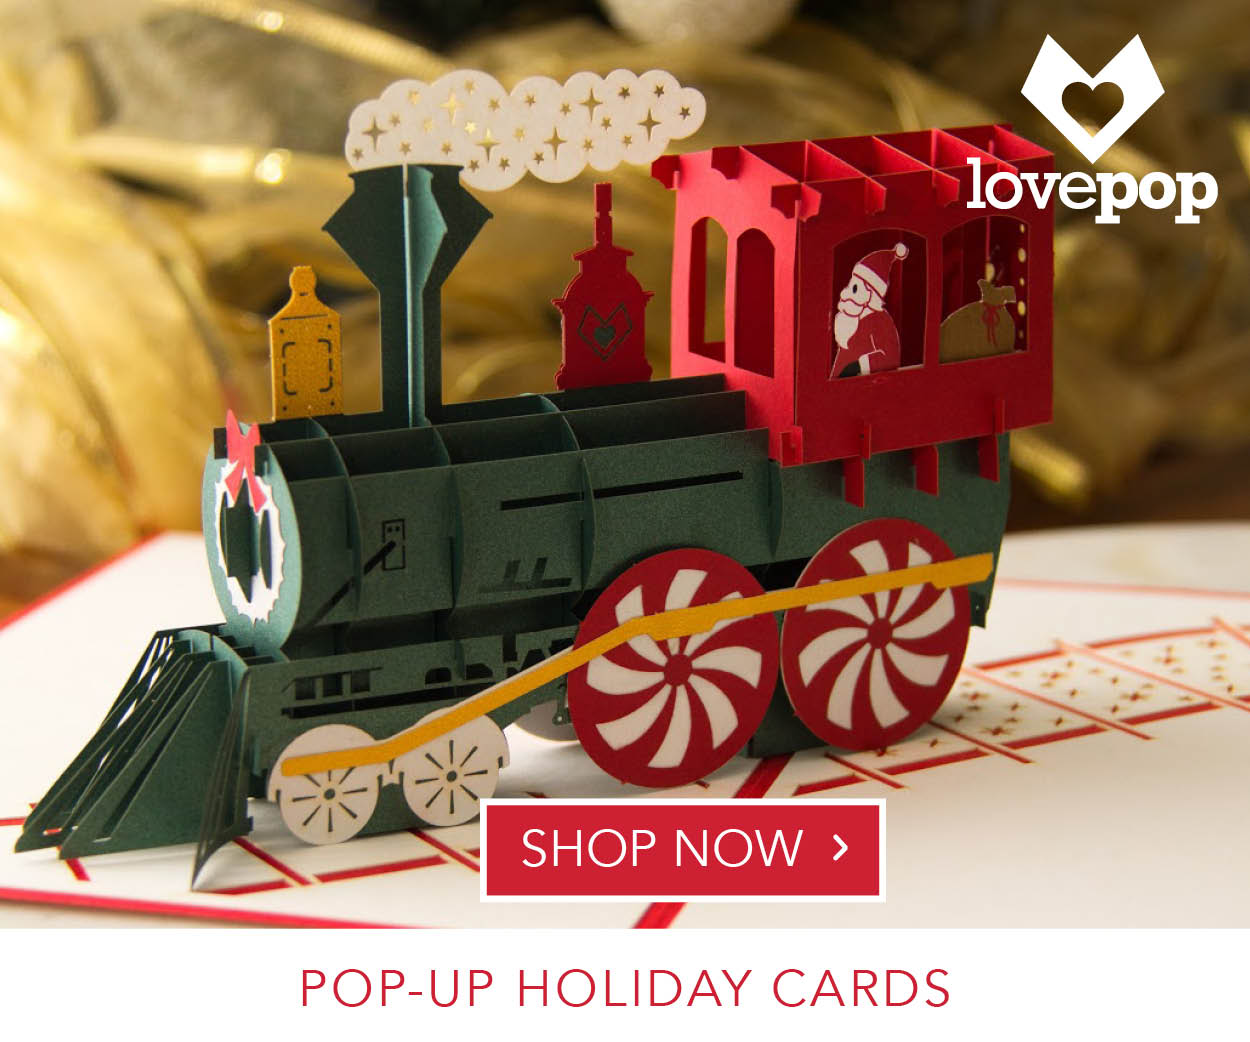 Pop-Up Holiday Cards